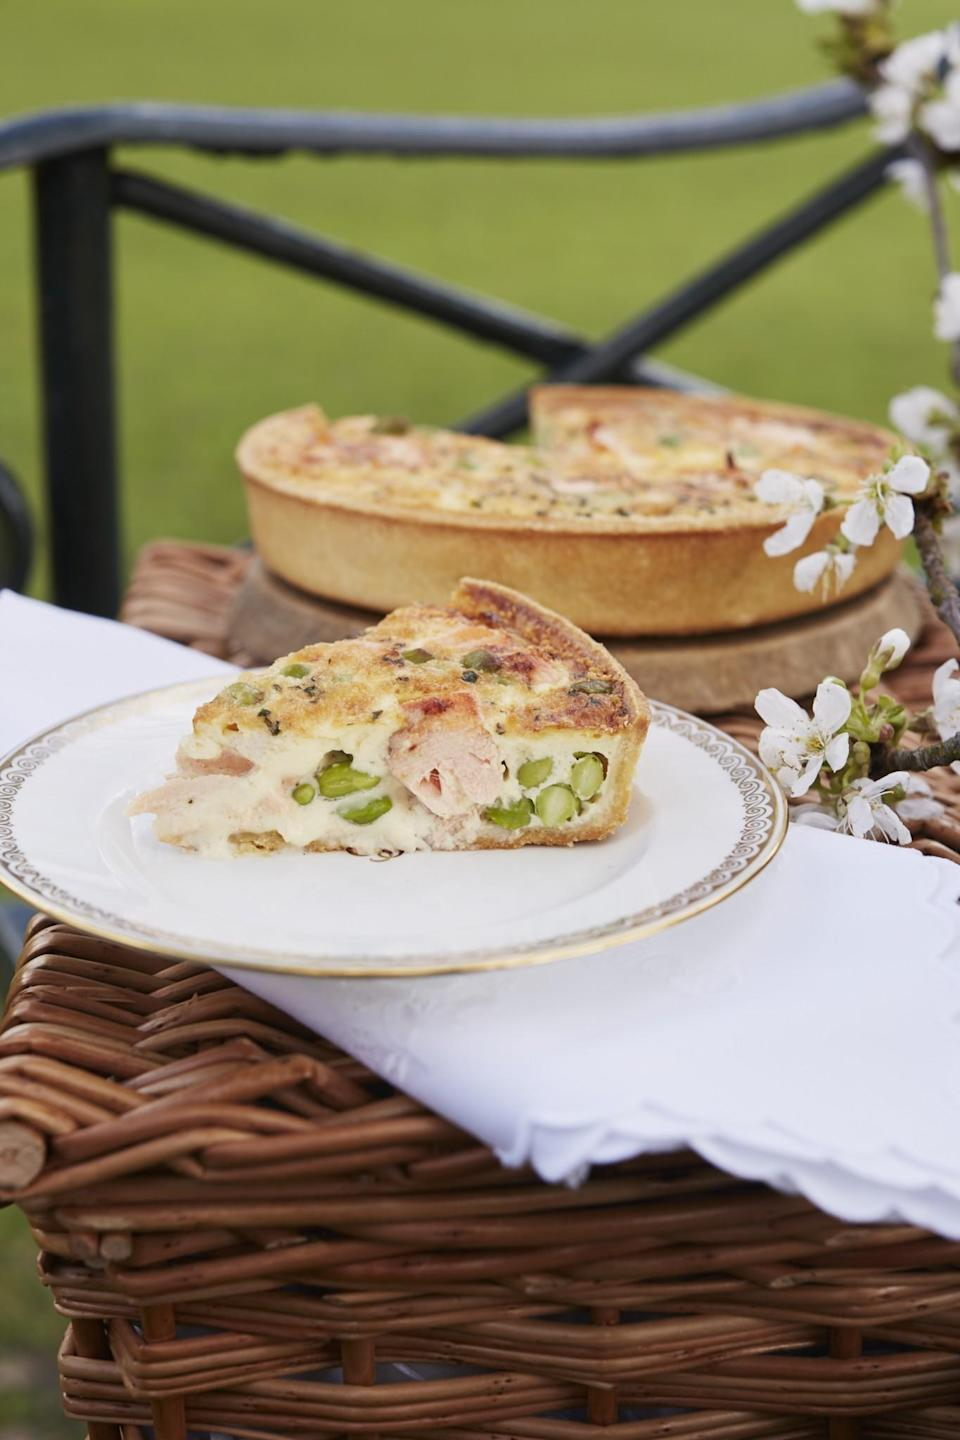 <p>Serves 4–6.<br><br><i>For the pastry:</i><br> 125g (1 cup) plain flour<br> a pinch of salt<br> 25g (1/8 cup) cold butter, diced<br> 25g (1/8 cup) lard<br> 2 tablespoons milk<br> (Or use 1 × 250g block of ready-made<br> shortcrust pastry)<br><br><i>For the filling:</i><br> 75ml (1/3 cup) milk<br> 75ml (1/3 cup) double cream<br> 2 medium free-range eggs<br> 1 tablespoon fresh tarragon, chopped<br> salt and pepper<br> 50g (½ cup) cheddar cheese, grated<br> 100g (¾ cup) poached salmon, flaked<br> 60g (1/3 cup) cooked and shelled<br> broad beans or soya beans<br><br><i>Equipment:</i> 20 cm/8″ flan tin<br><br>1. Preheat the oven to 190°C (375°F, gas mark 5).<br><br>2. To make the pastry, sieve the flour and salt into a bowl, add the fats<br> and rub the mixture through your fingertips until you get a sandy,<br> breadcrumb-like texture. Add the milk a little at a time and bring the<br> ingredients together into a dough. Cover and allow to rest in the fridge for<br> 30–45 minutes.<br><br>3. Lightly flour the work surface and roll out the pastry to make a circle a<br> little larger than the top of your flan tin and approximately 0.5 cm thick.<br> Line the tin with the pastry, taking care not to make any holes in it or the<br> filling will leak. Cover and rest for a further 30 minutes in the fridge.<br><br>4. Line the pastry case with baking paper, add baking beans and bake<br> blind for 15 minutes. Remove from the oven and take out the baking<br> paper and beans.<br><br>5. Reduce the oven temperature to 150°C/300°F/gas mark 2.<br><br>6. Beat together the milk, cream, eggs, herbs and seasoning. Scatter half of the grated cheese in the blind-baked pastry case, top with the flaked salmon and beans, and then pour over the milk-and-egg mix. If required, give the filling a gentle stir to ensure it is is evenly dispersed, but again be careful not to damage the pastry case. Sprinkle over the remaining cheese. Place into the oven and bake for 20–25 minutes until set and lightly go